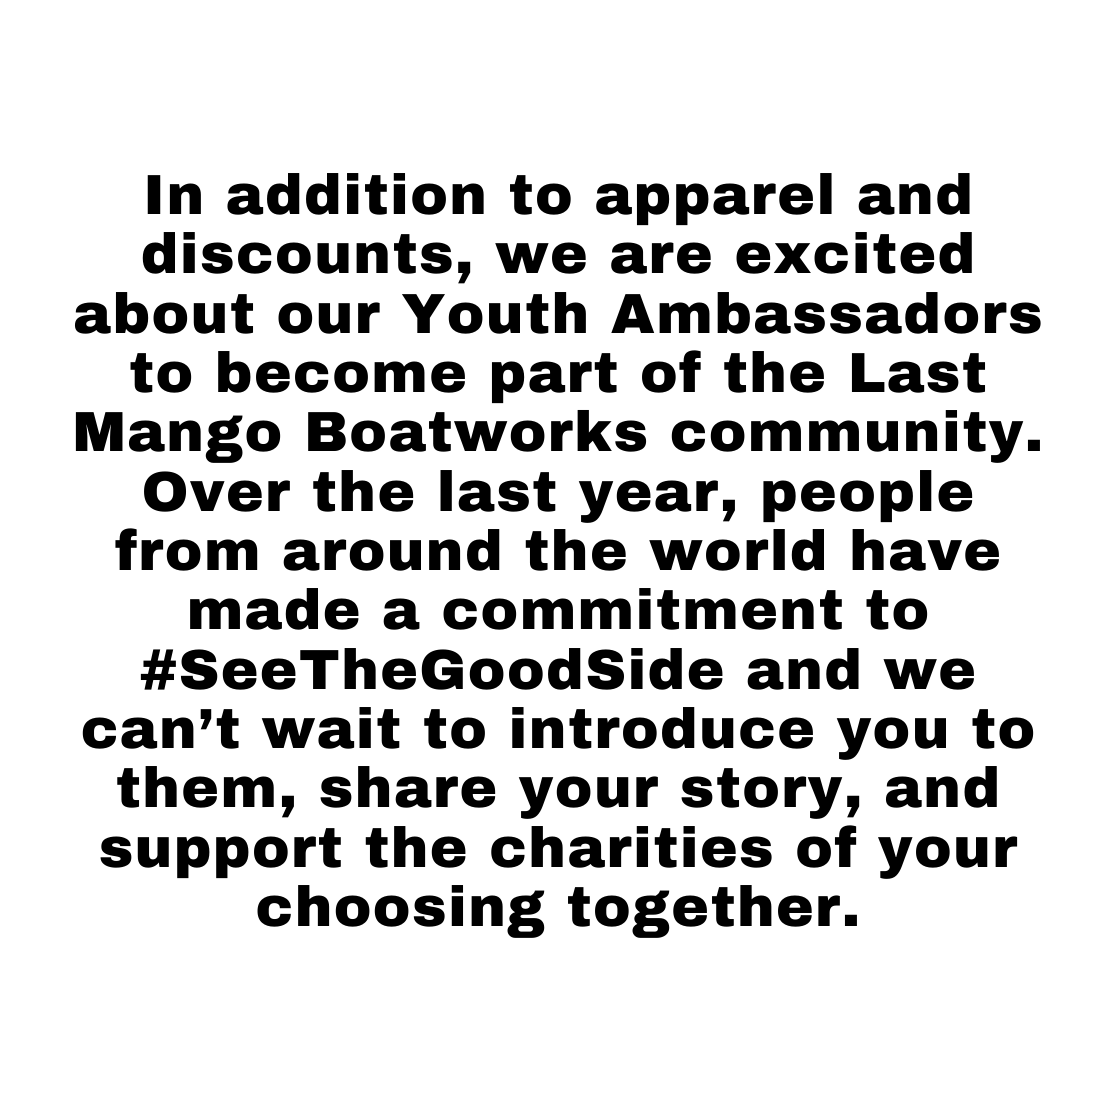 In addition to apparel and discounts, we are excited about our Youth Ambassadors to become part of the last mango boatworks community. Over the last year, people from around the world have made a commitment to #SeeTheGoodSide and we can't wait to introduce you to them, share your story, and support the charities of your choosing together.